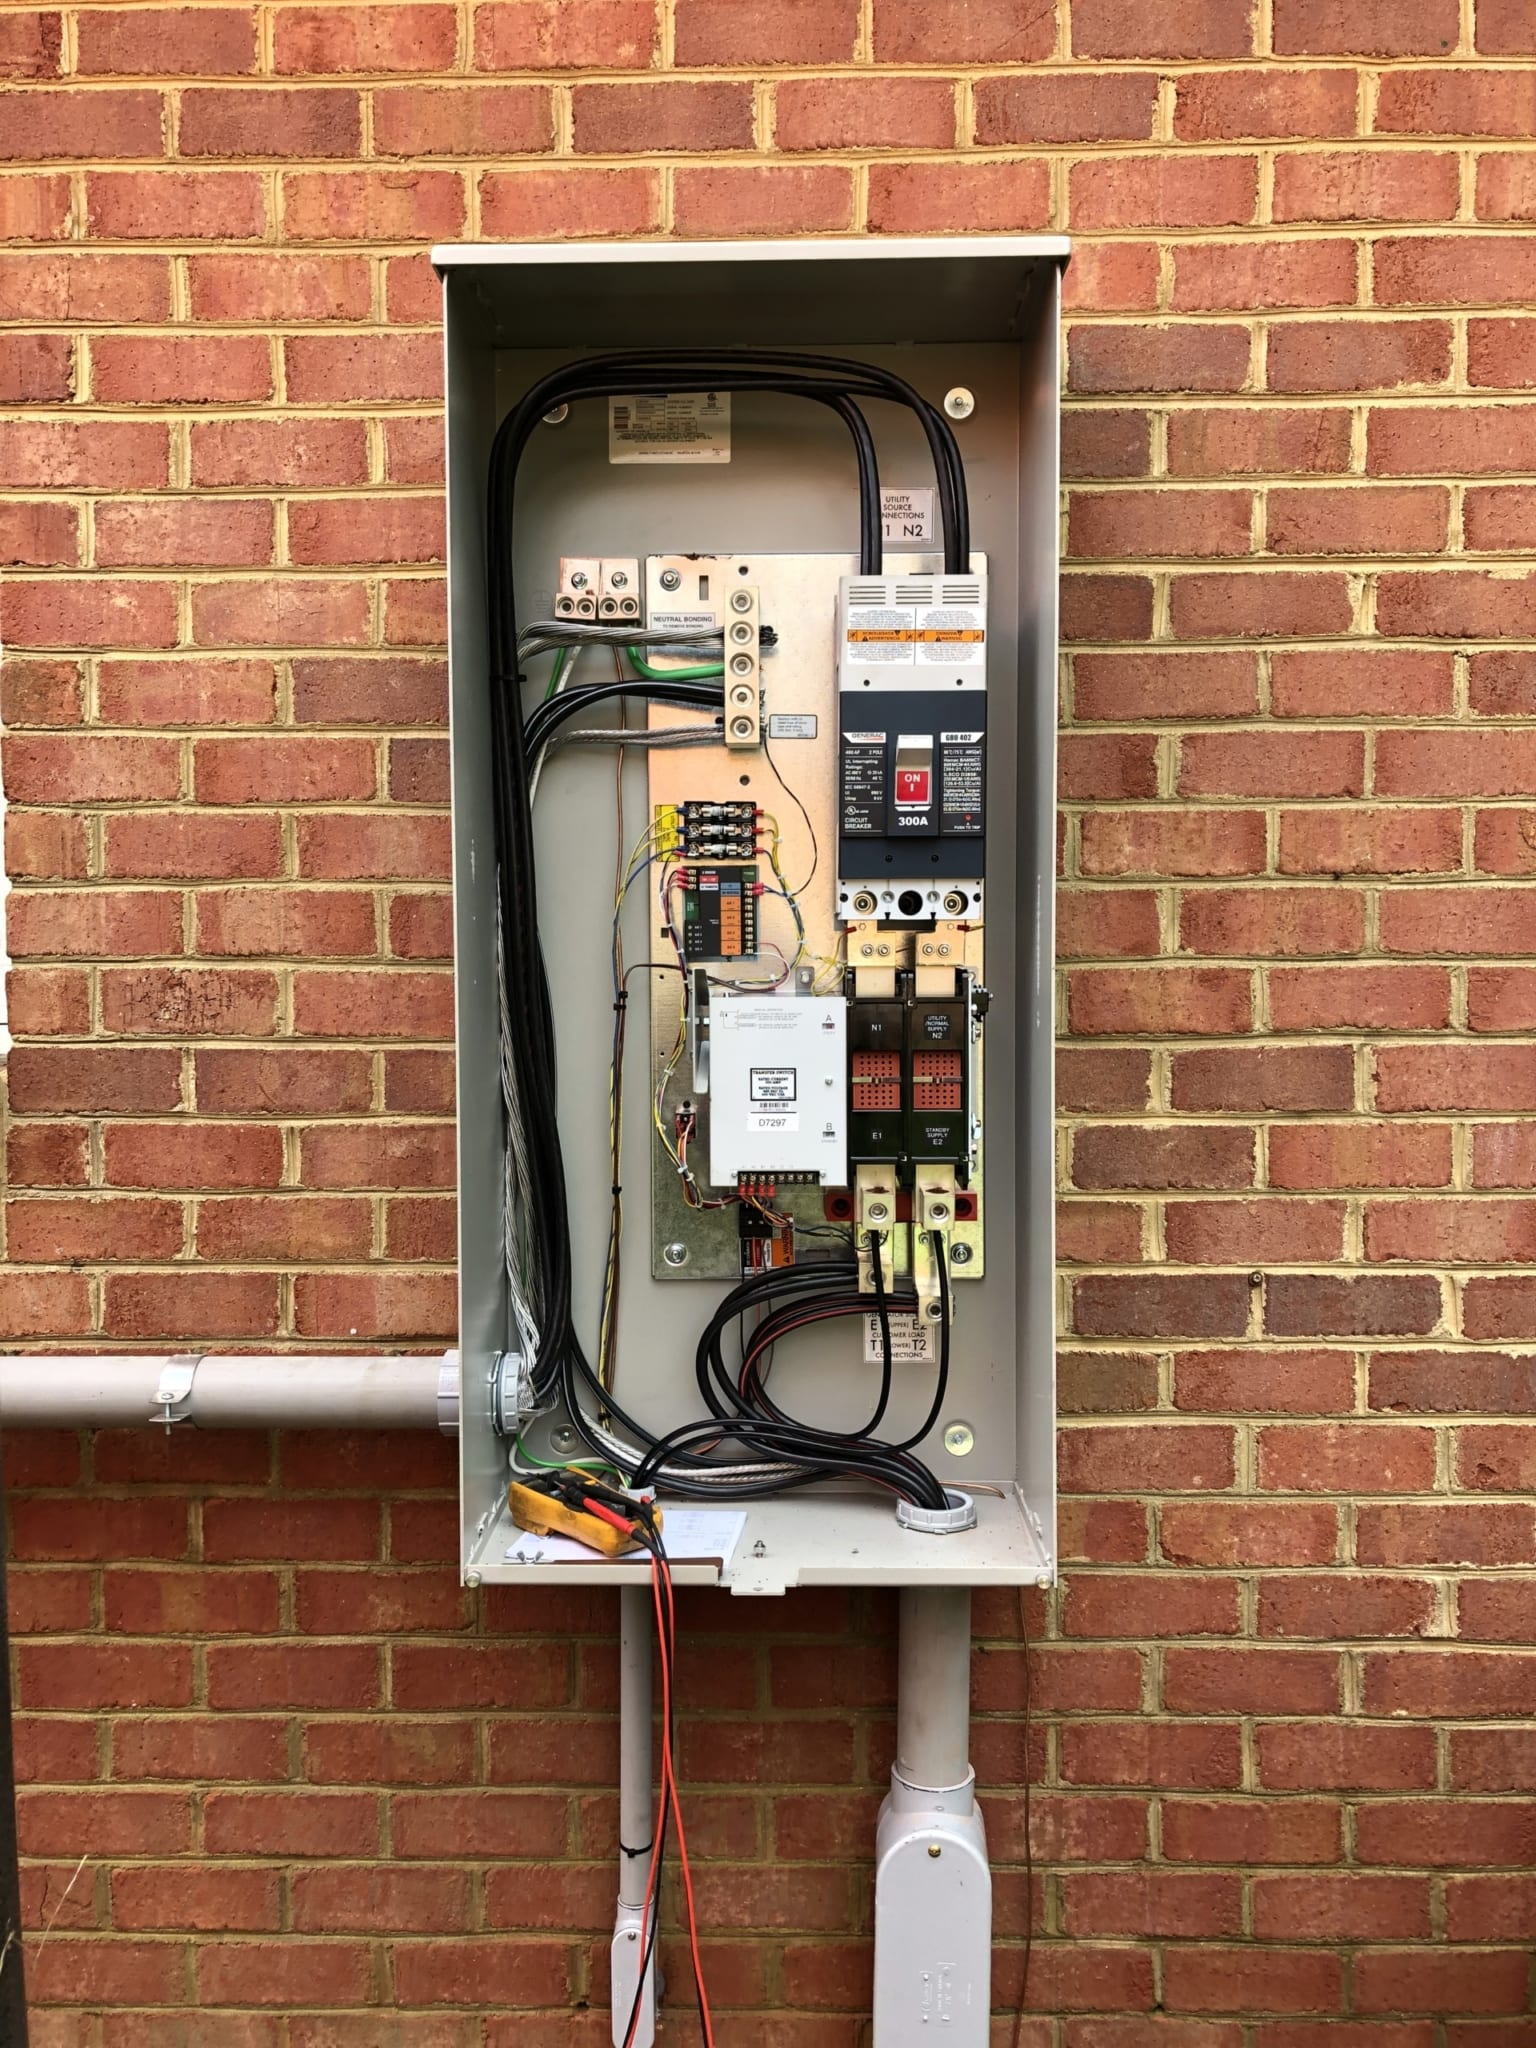 1.6.20 Chesterfield Generac Automatic Transfer Switch Open